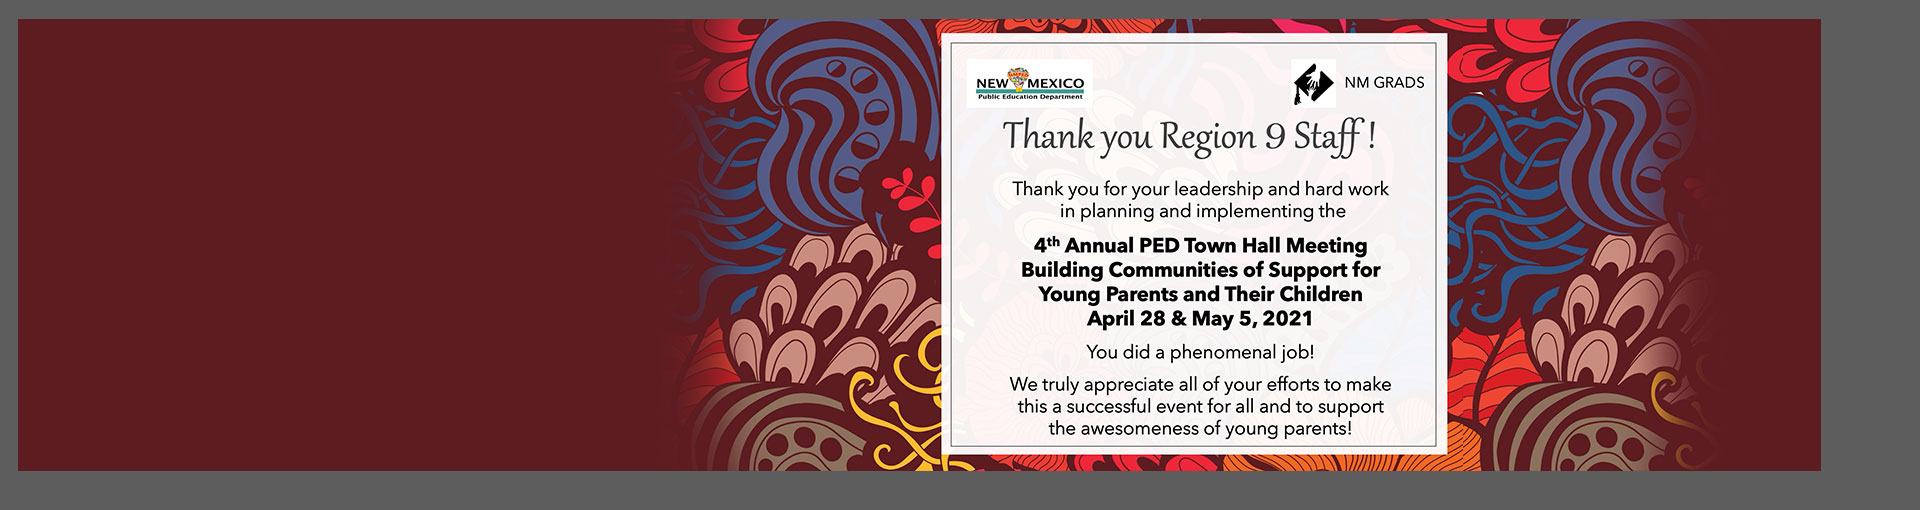 New Mexico Public Education Department. NM GRADS. Thank you Region 9 Staff! Thank you for your leadership and hard work in planning and implementing the 4th Annual PED Town Hall Meeting Building Communities of Support for Your Parents and Their Child